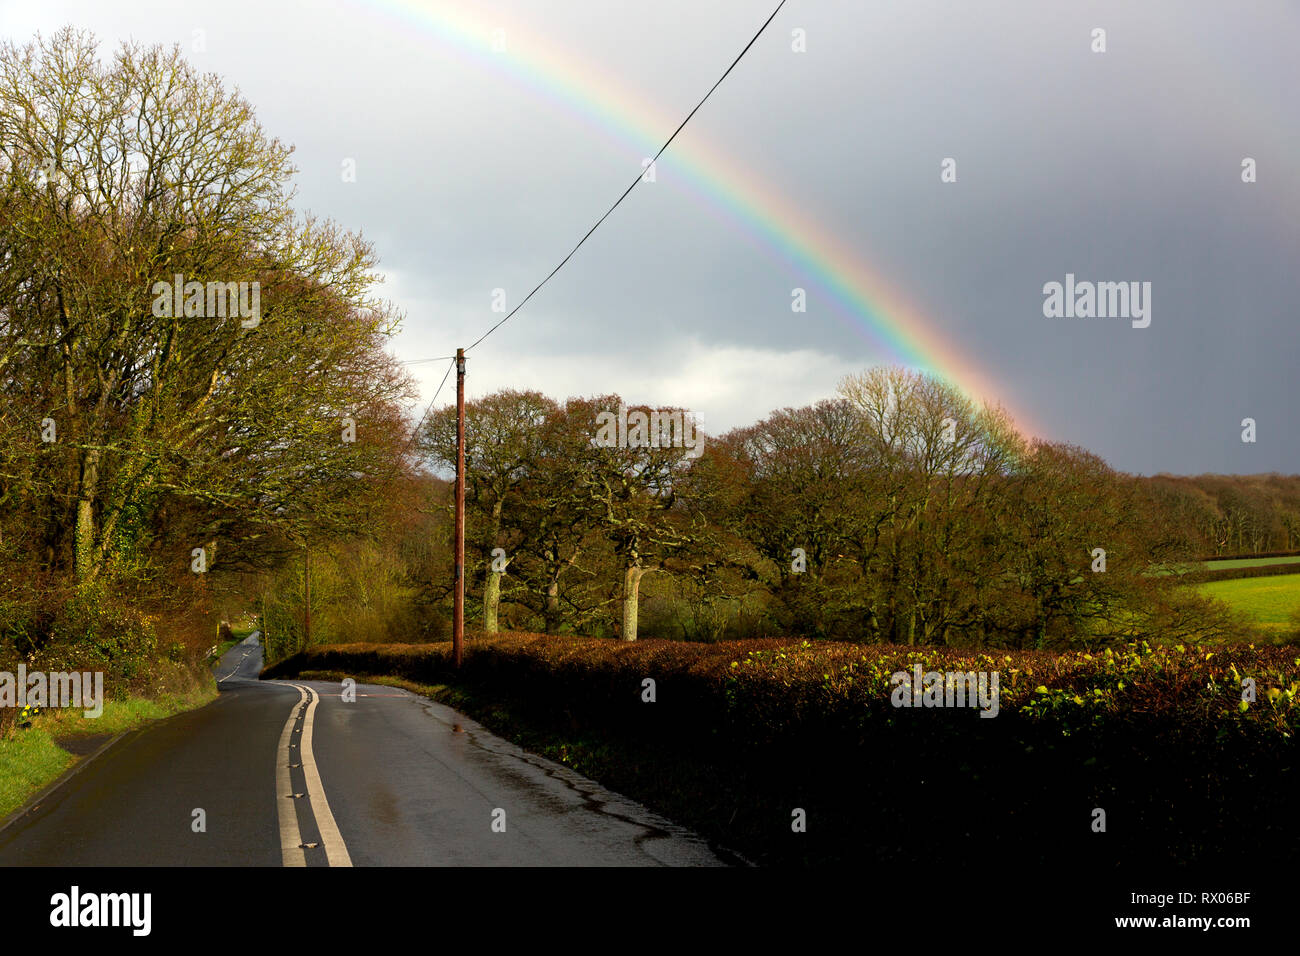 rainbow,rural,road,double,white,no,over,taking,lines,after,rain,storm,slippery,conditions,dangerous,country,village,speed,slippery,slide,crash,acciden Stock Photo